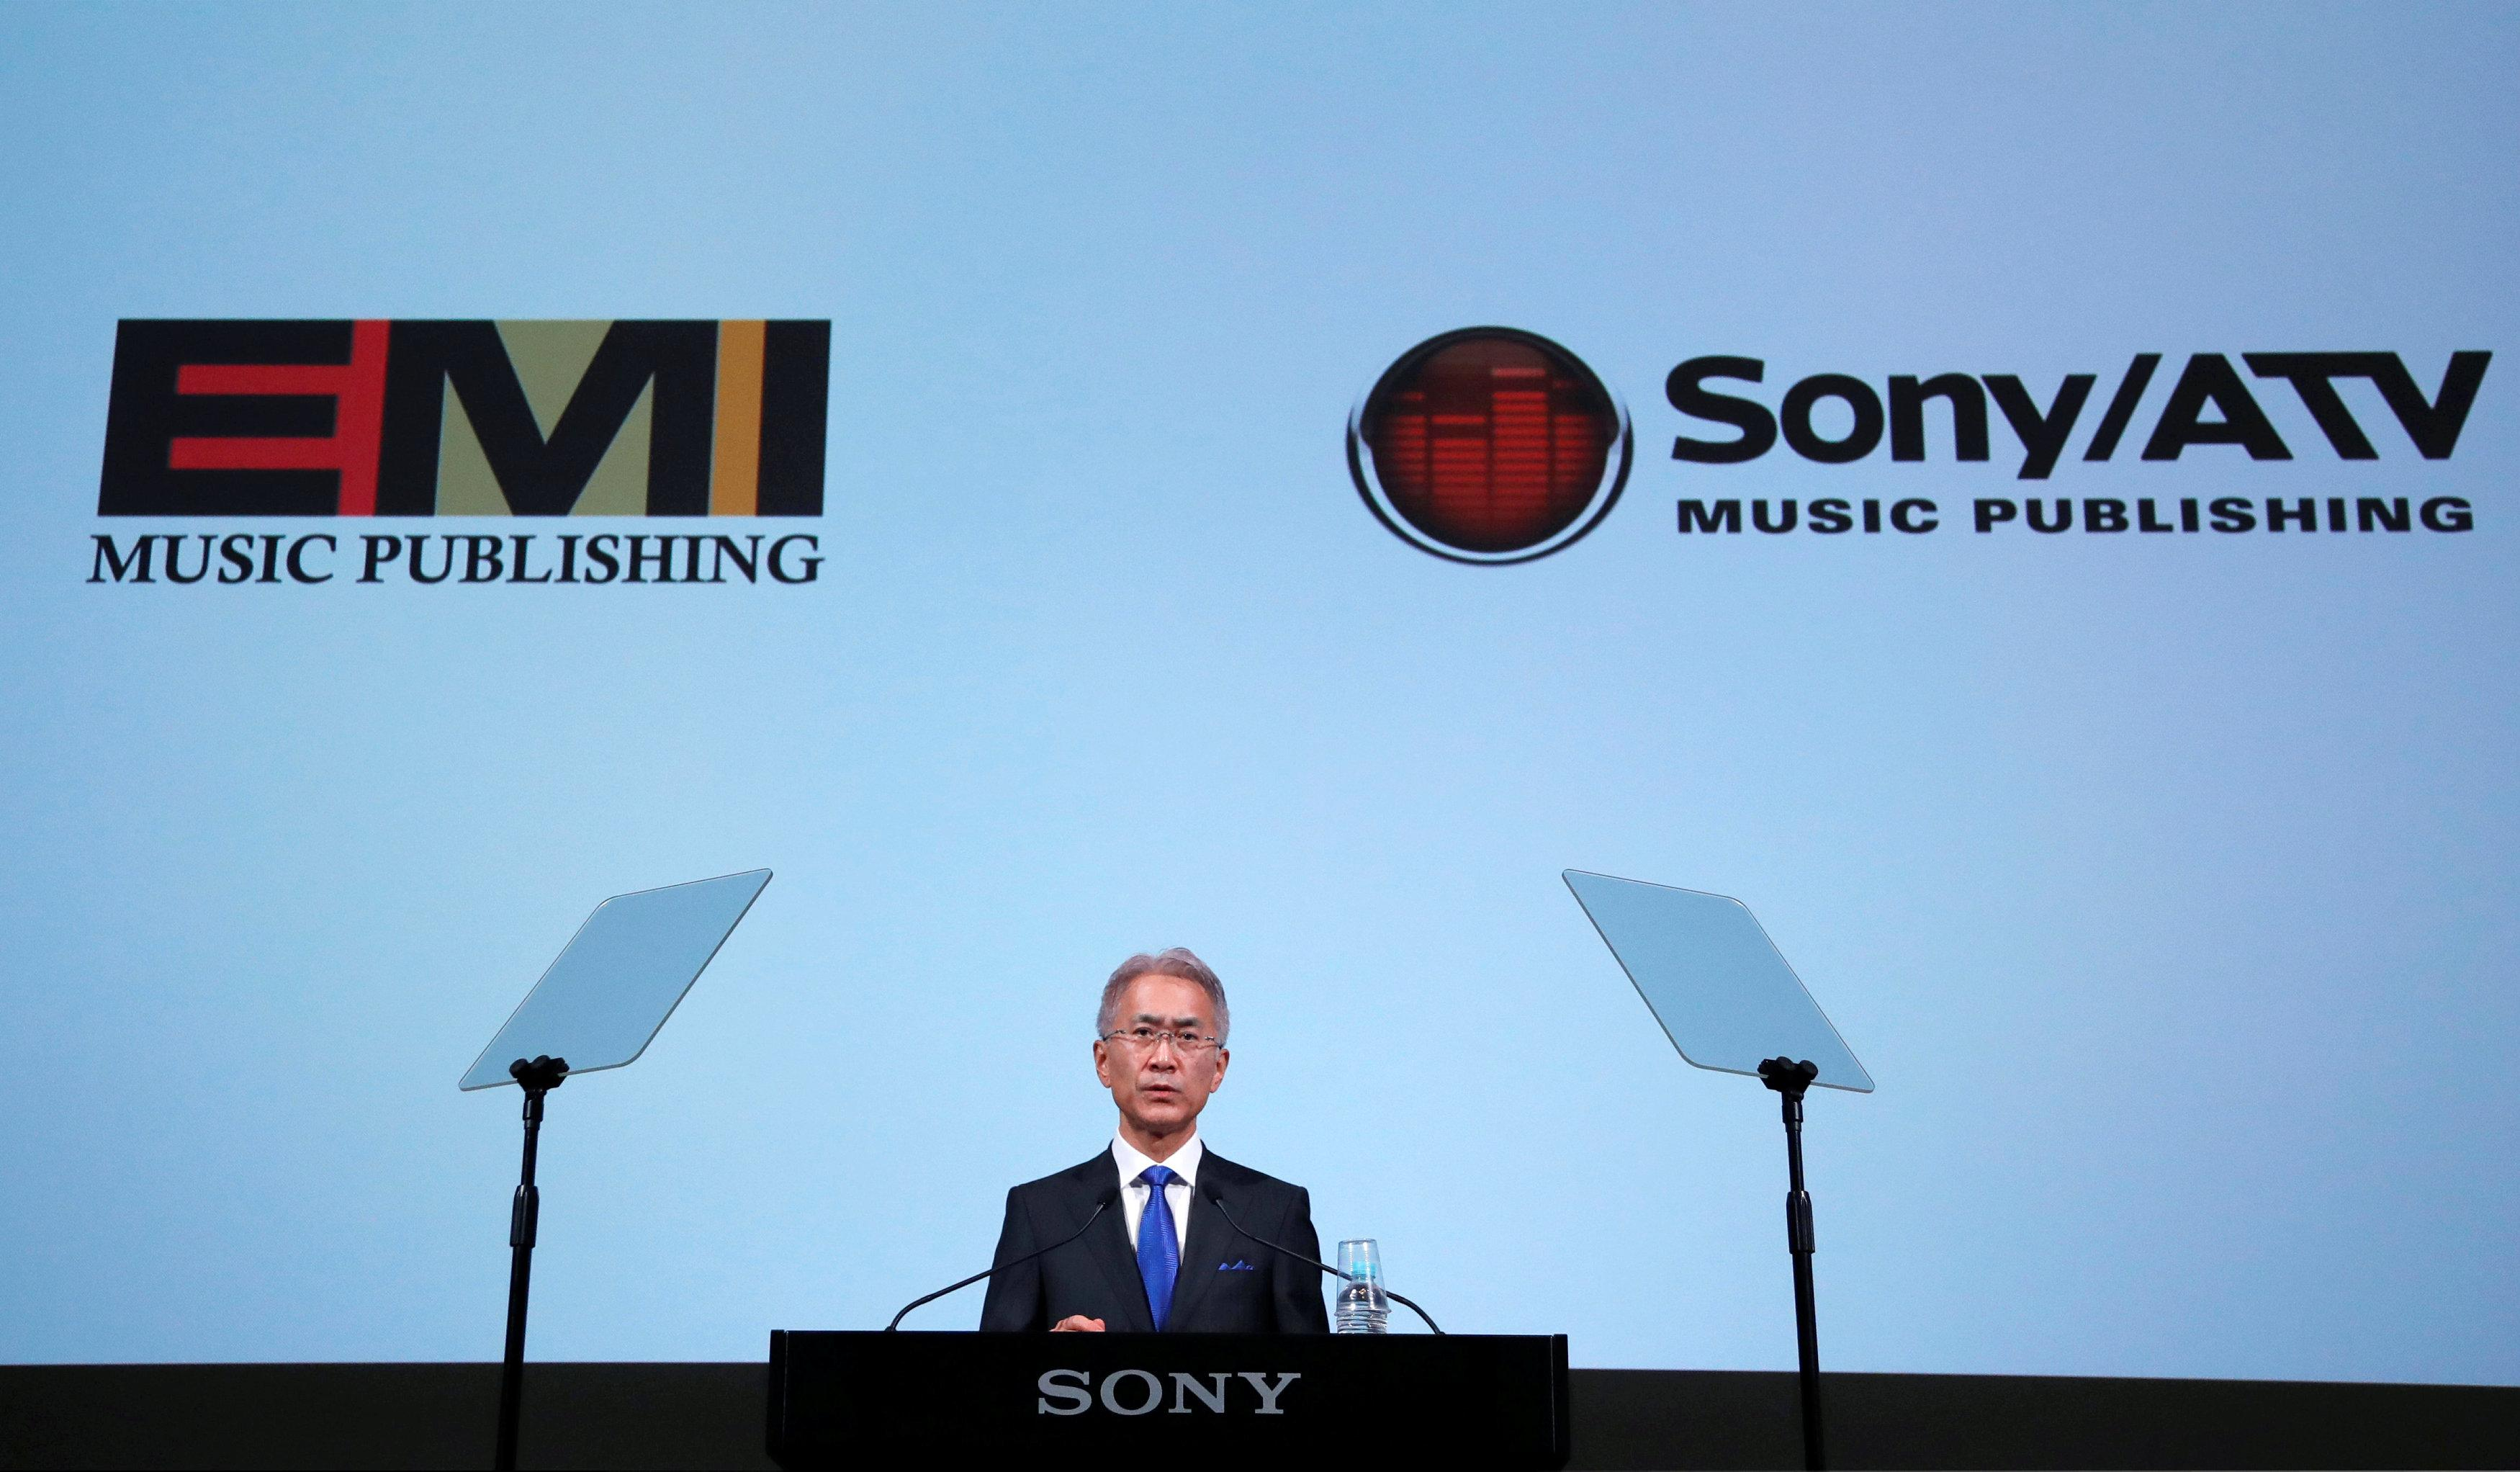 Sony Corp's new President and Chief Executive Officer Kenichiro Yoshida attends a news conference on their business plan at the company's headquarters in Tokyo, Japan May 22, 2018.  Toru Hanai